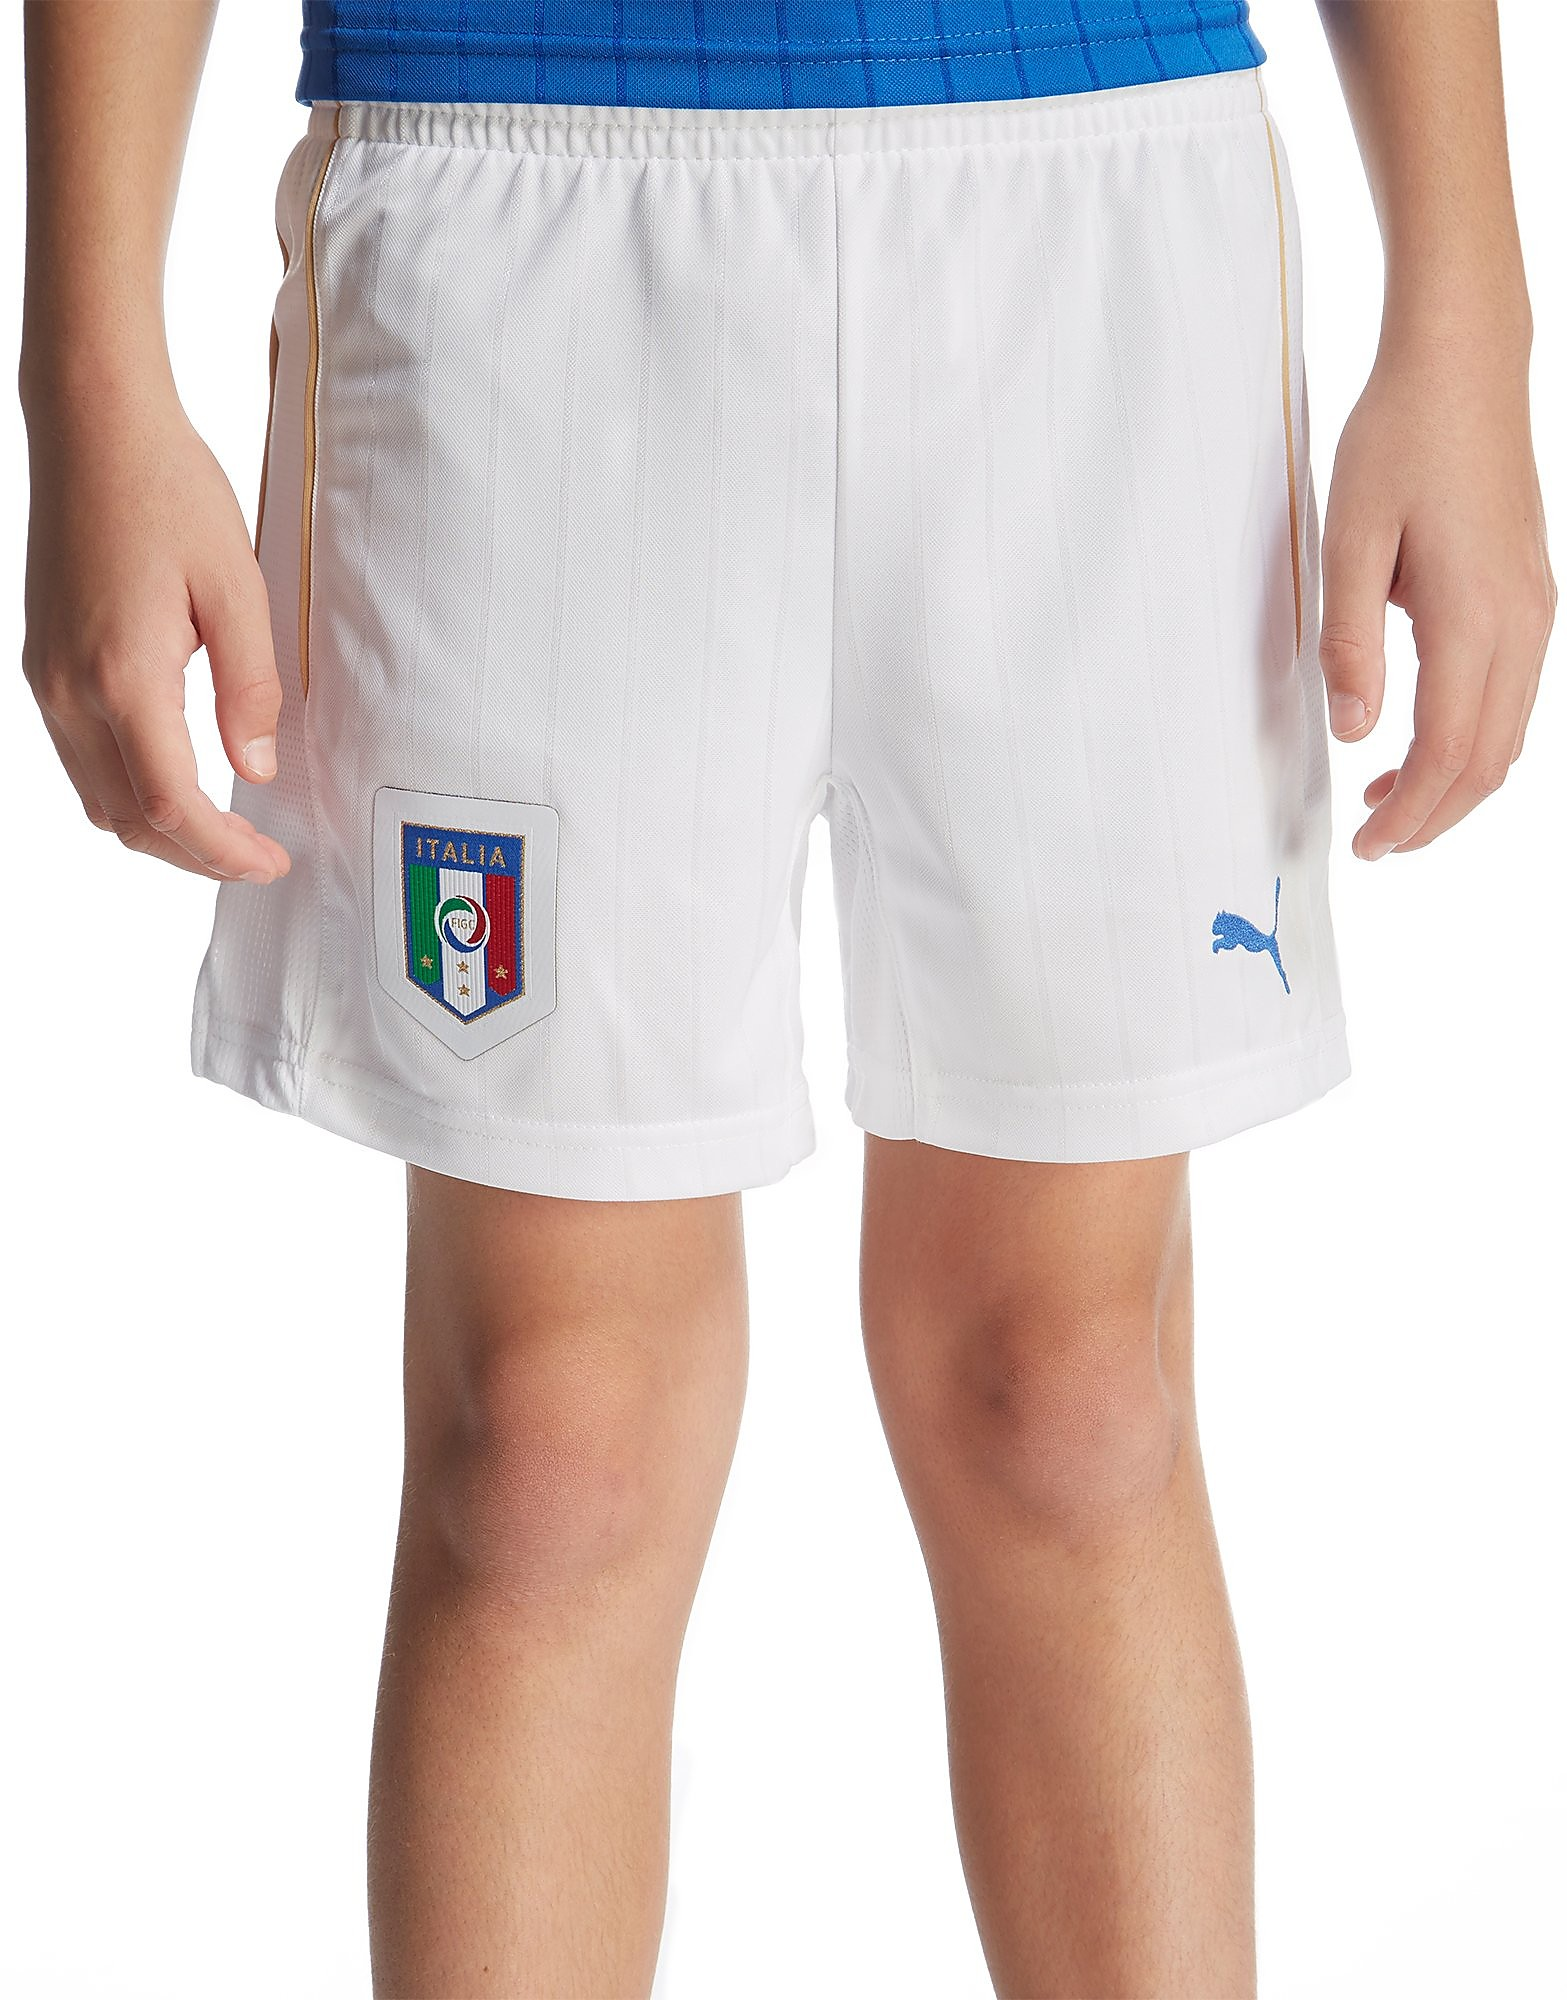 PUMA Italy Home 2016 Shorts Junior